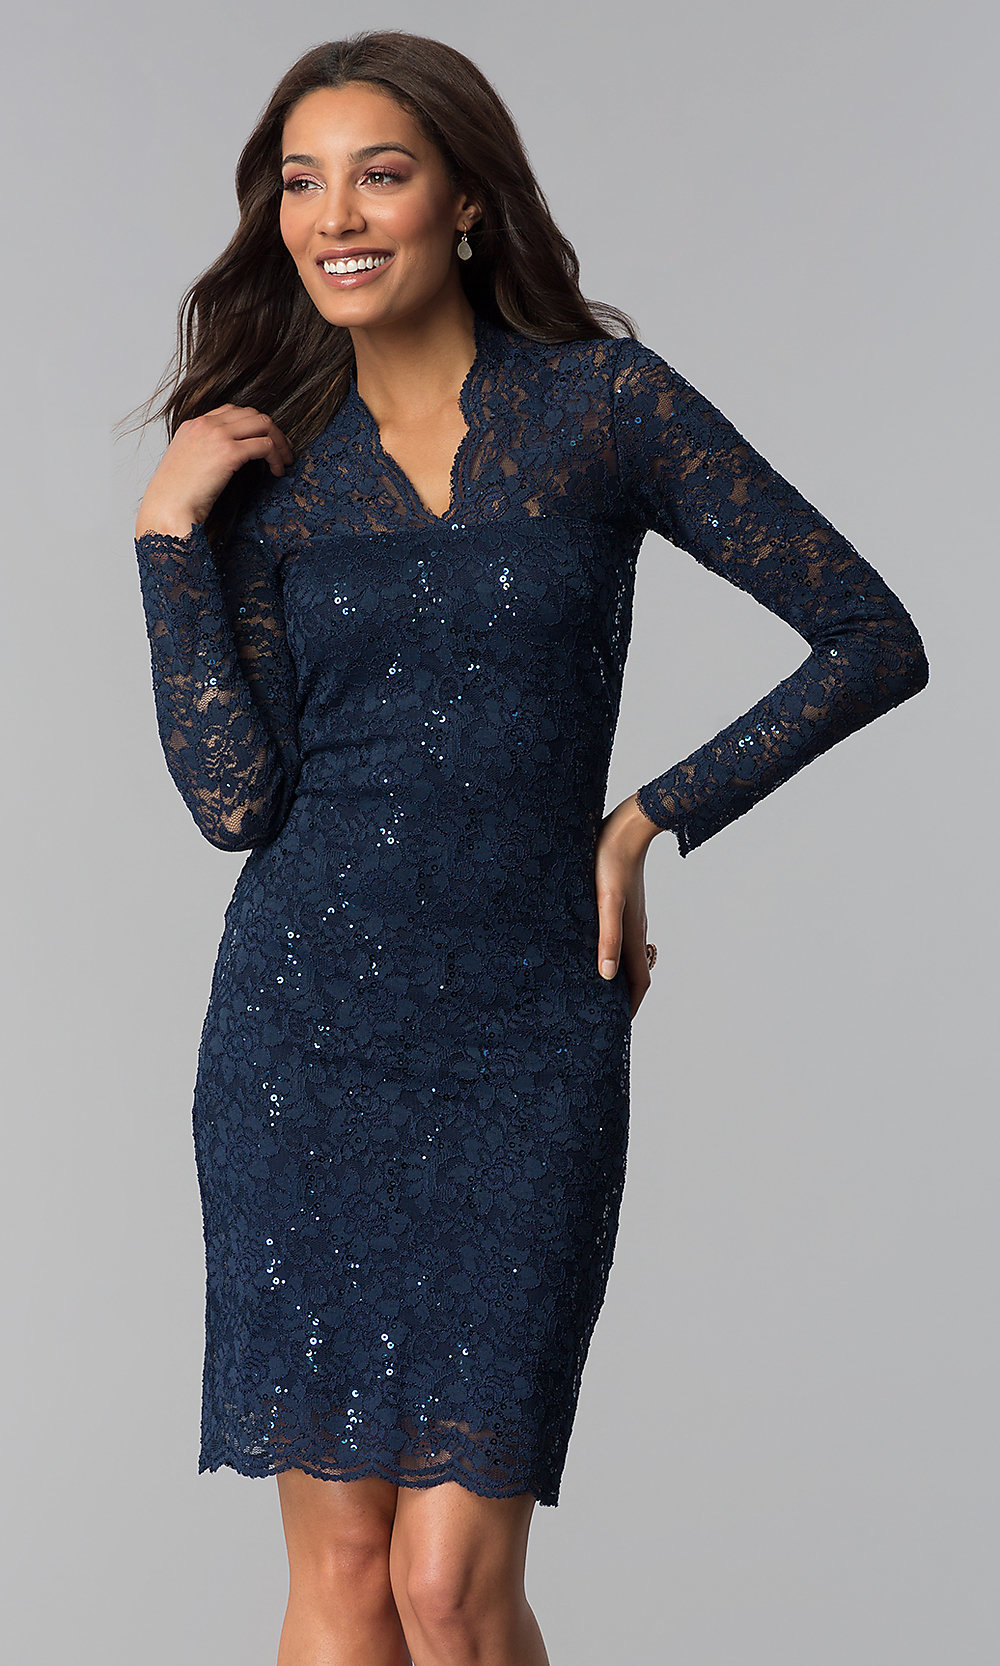 Knee-Length Long-Sleeved Lace Wedding-Guest Dress